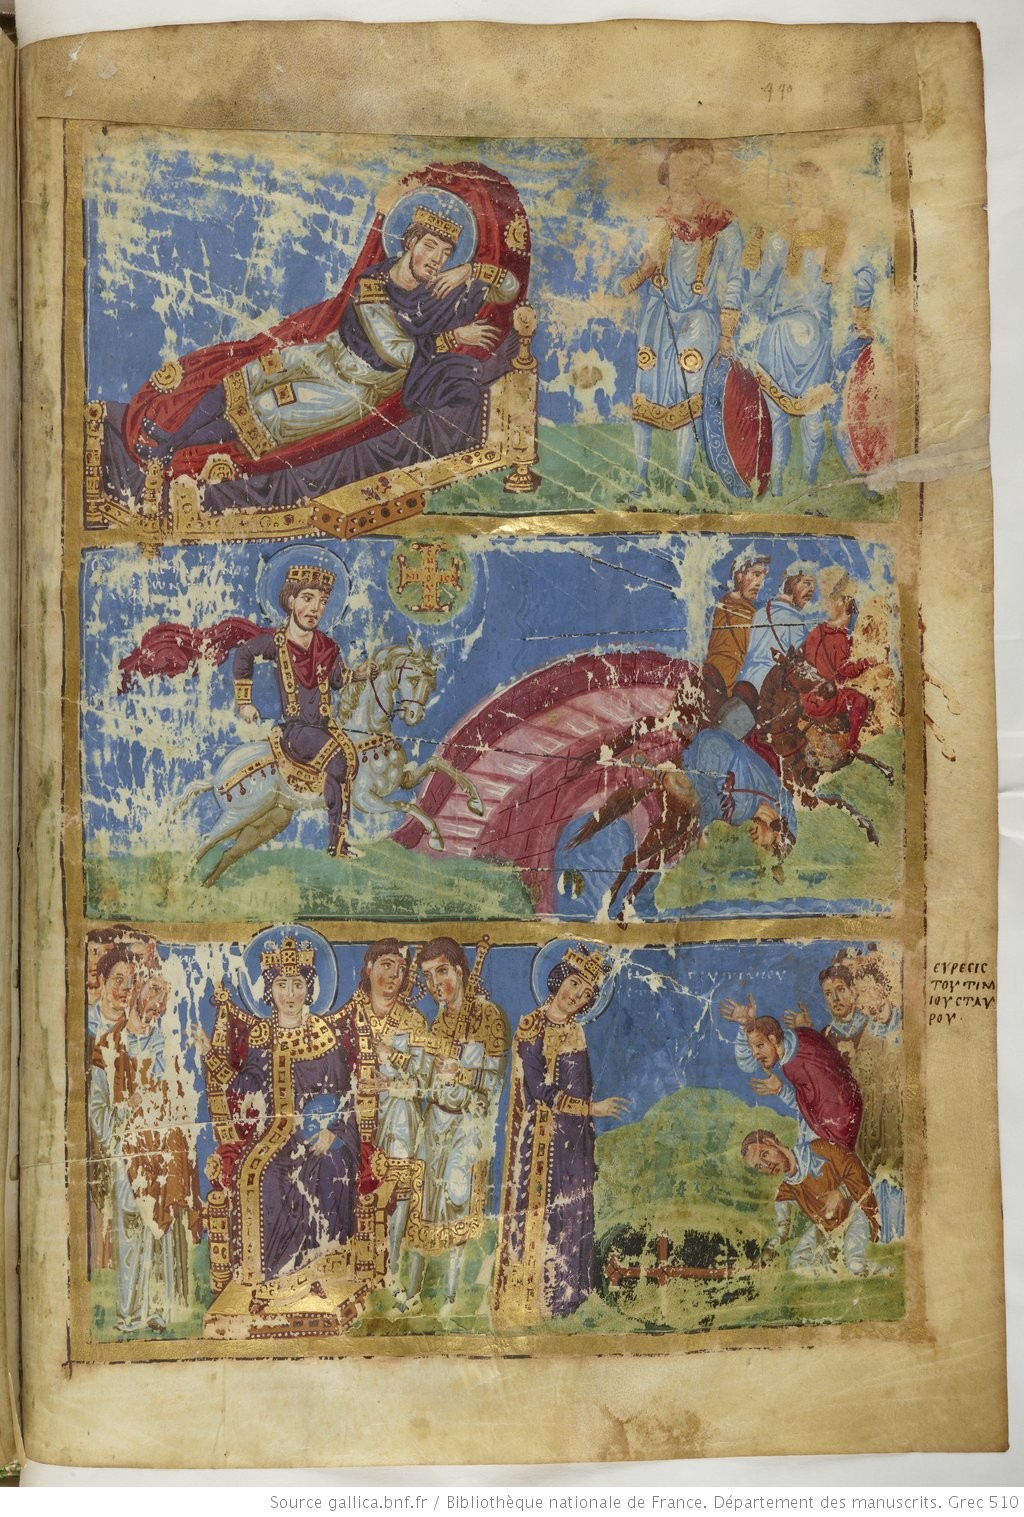 http://upload.wikimedia.org/wikipedia/commons/e/e3/Dream_of_Constantine_Milvius_BnF_MS_Gr510_fol440.jpg